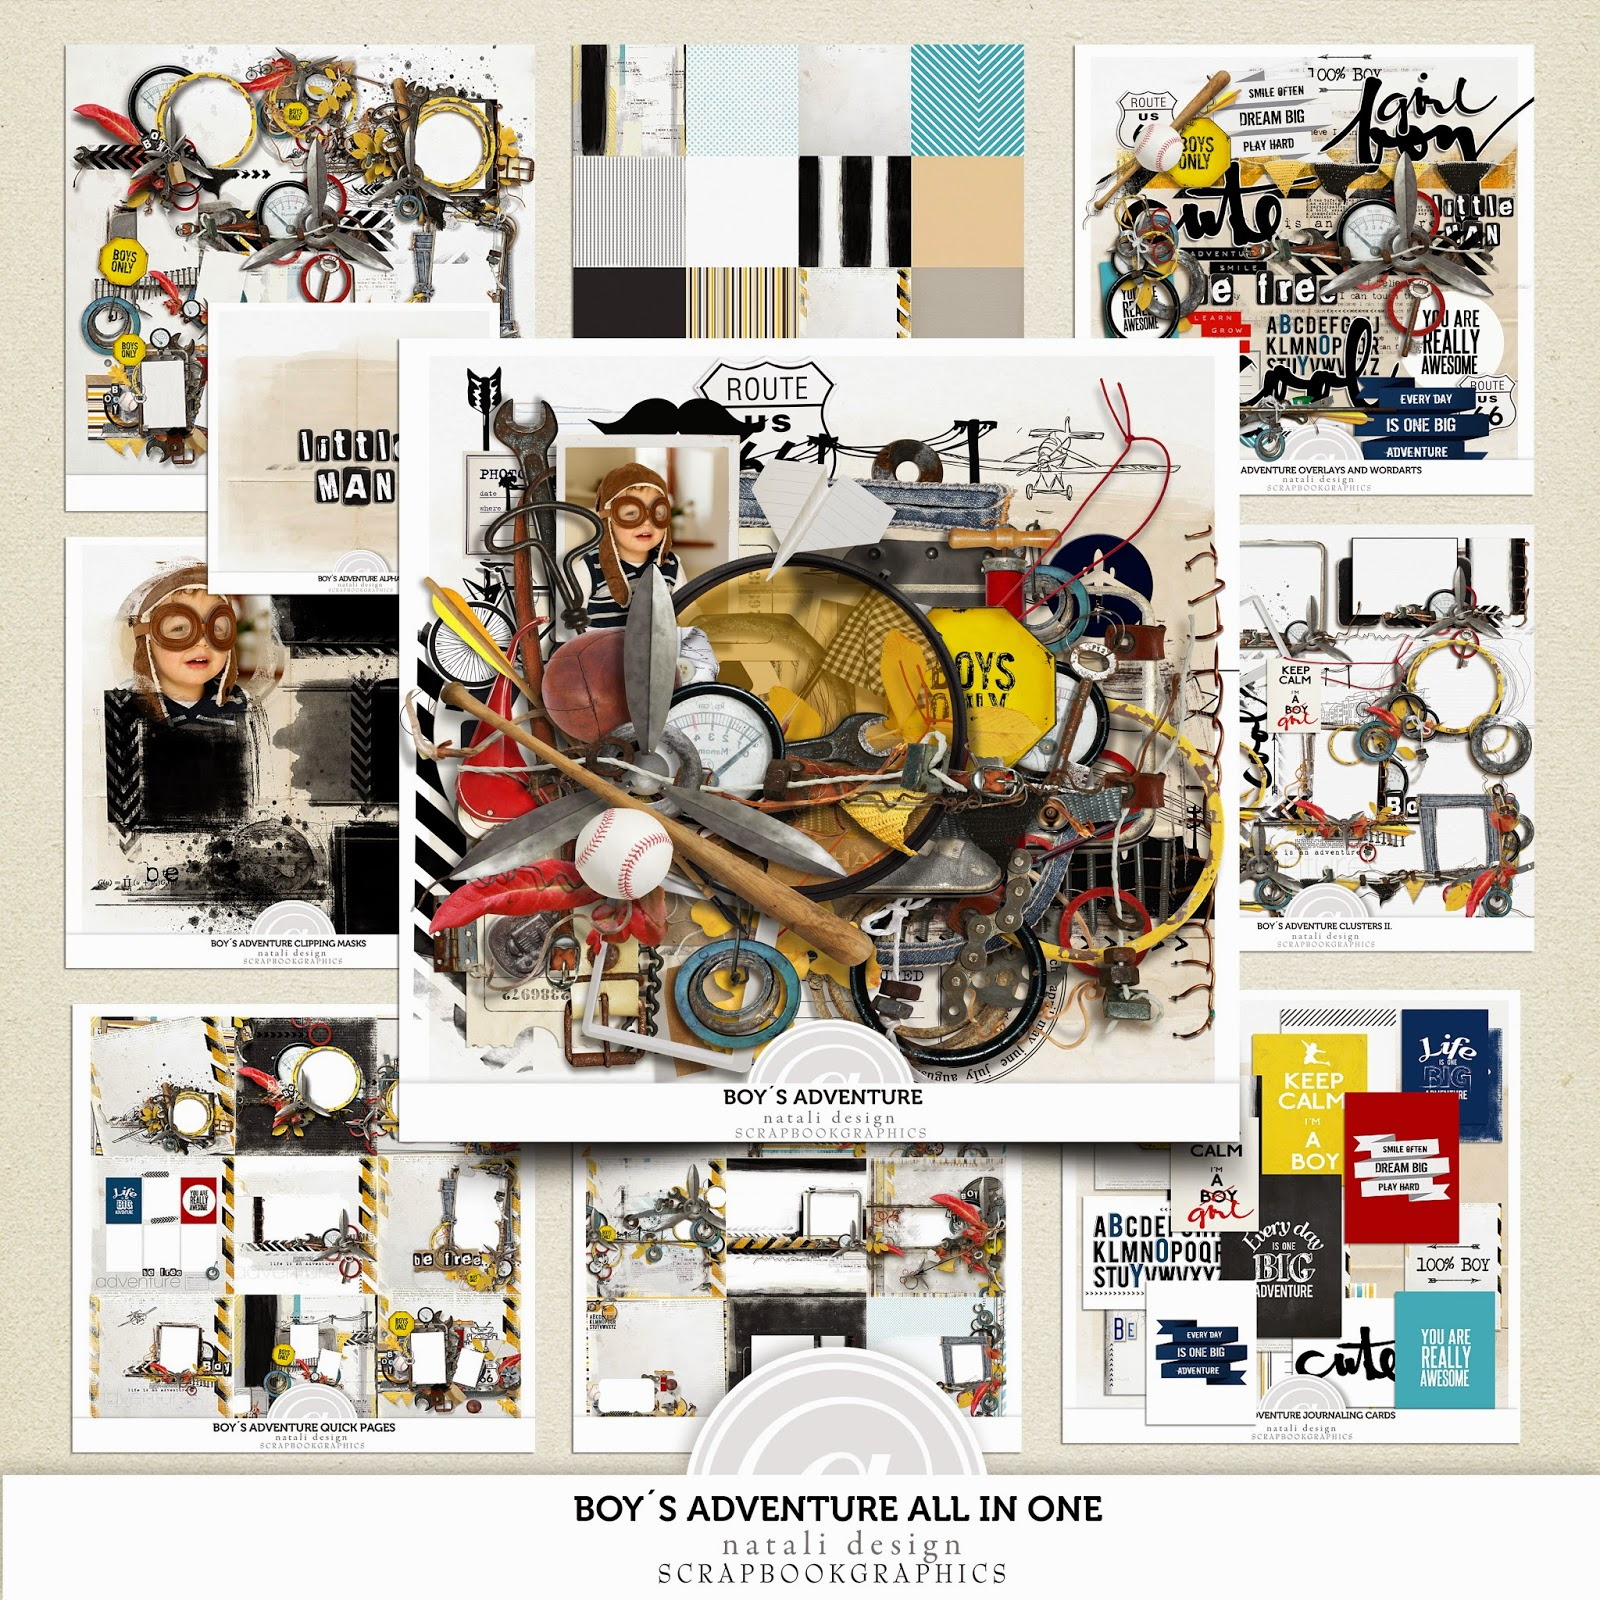 http://shop.scrapbookgraphics.com/Boy-s-adventure-All-in-One.html